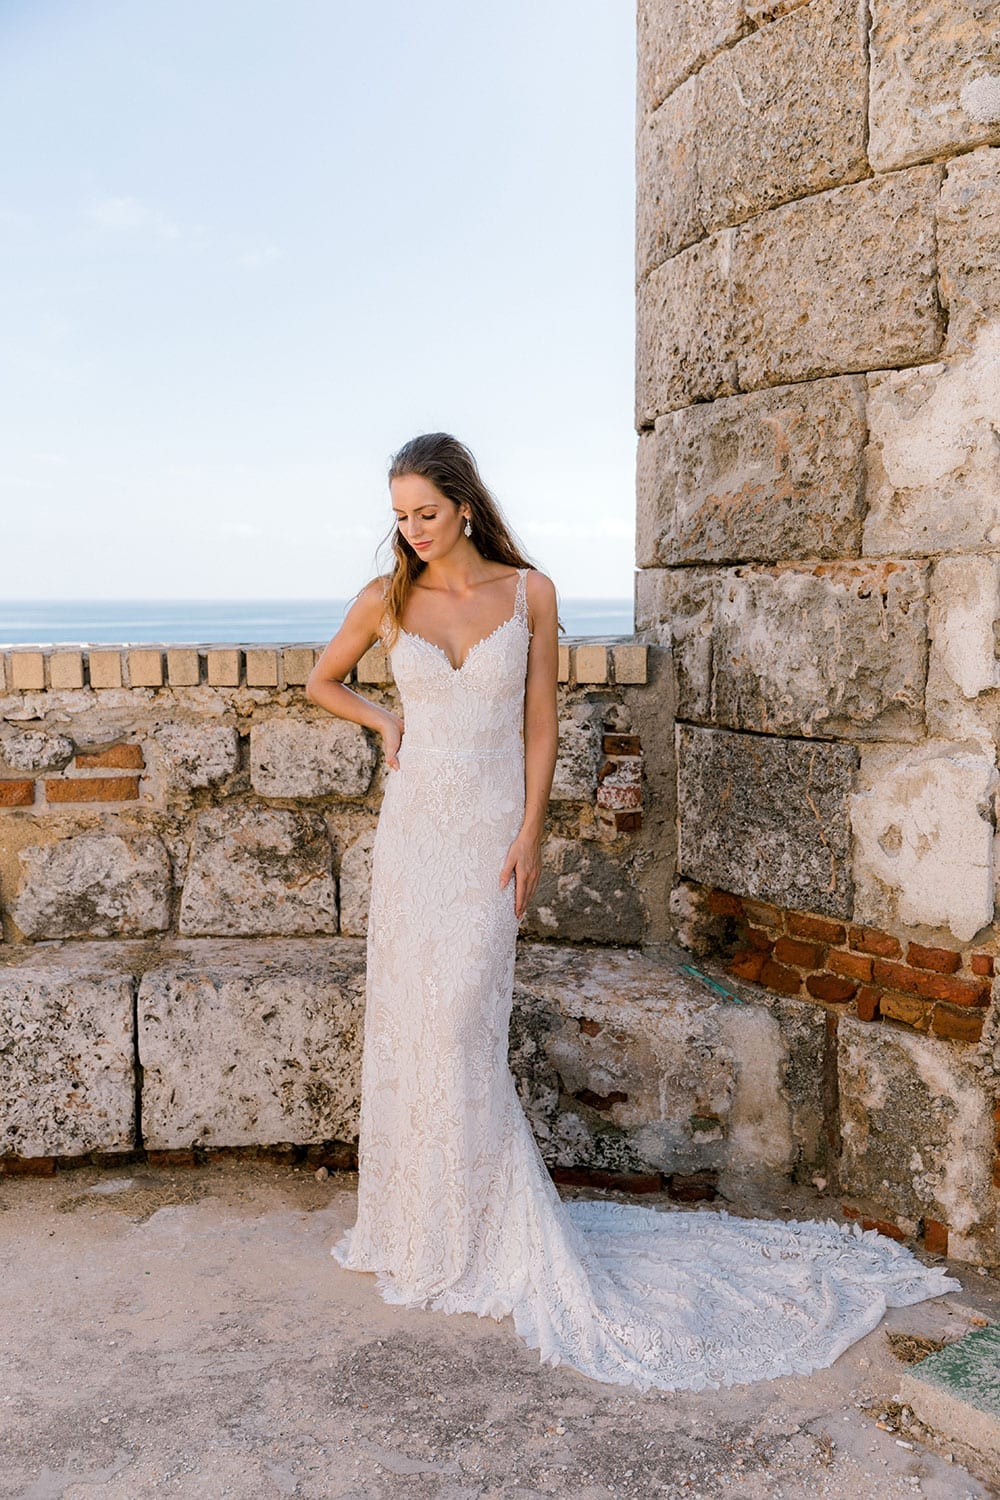 Model wearing Vinka Design Miriam Wedding Dress, a Beaded Lace Wedding Gown next to old stone wall in Cuba